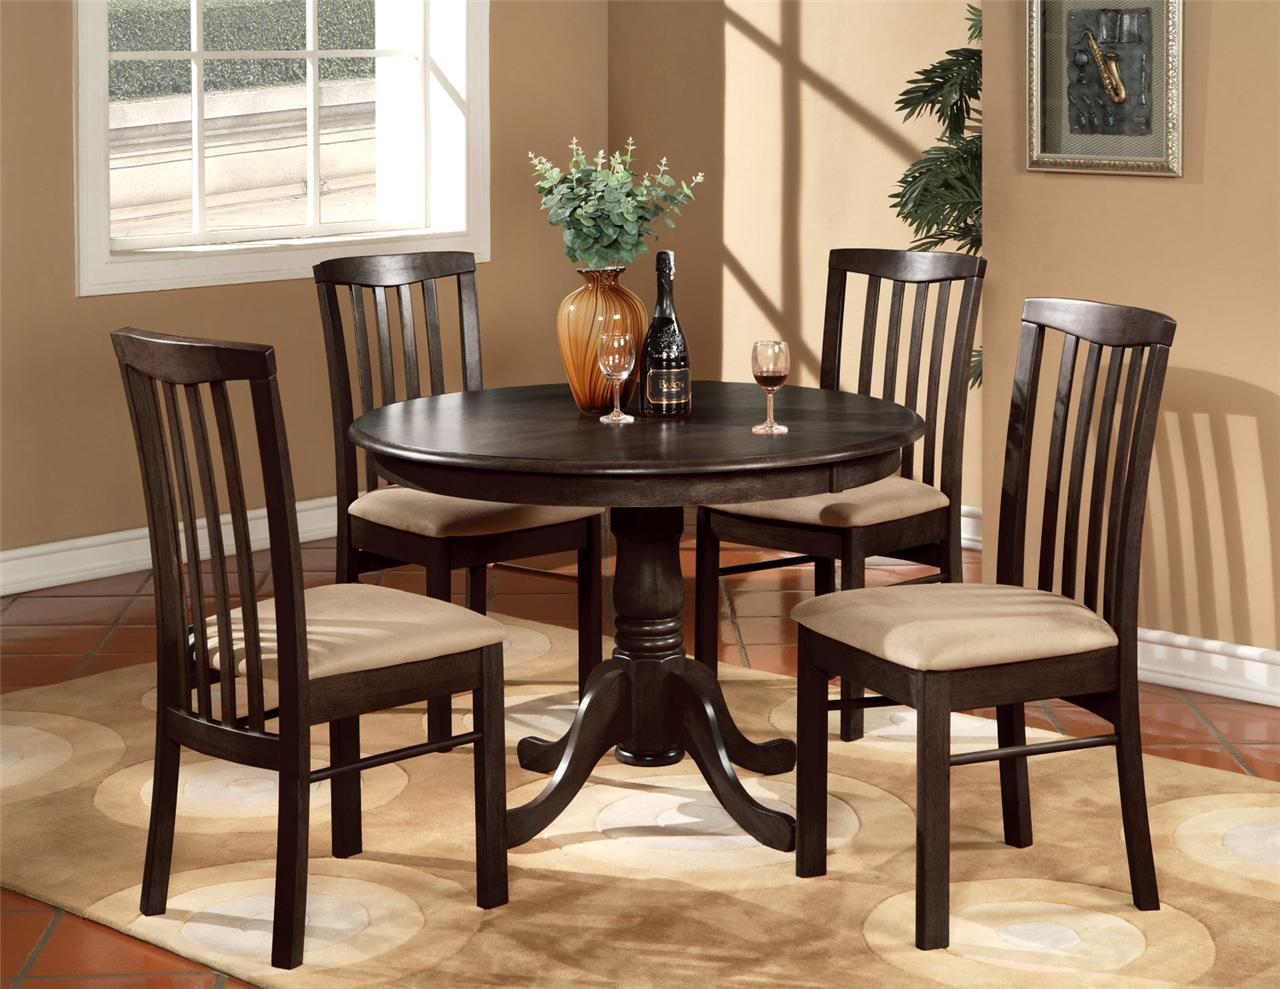 Excellent Small Round Kitchen Table Set 1280 x 989 · 160 kB · jpeg